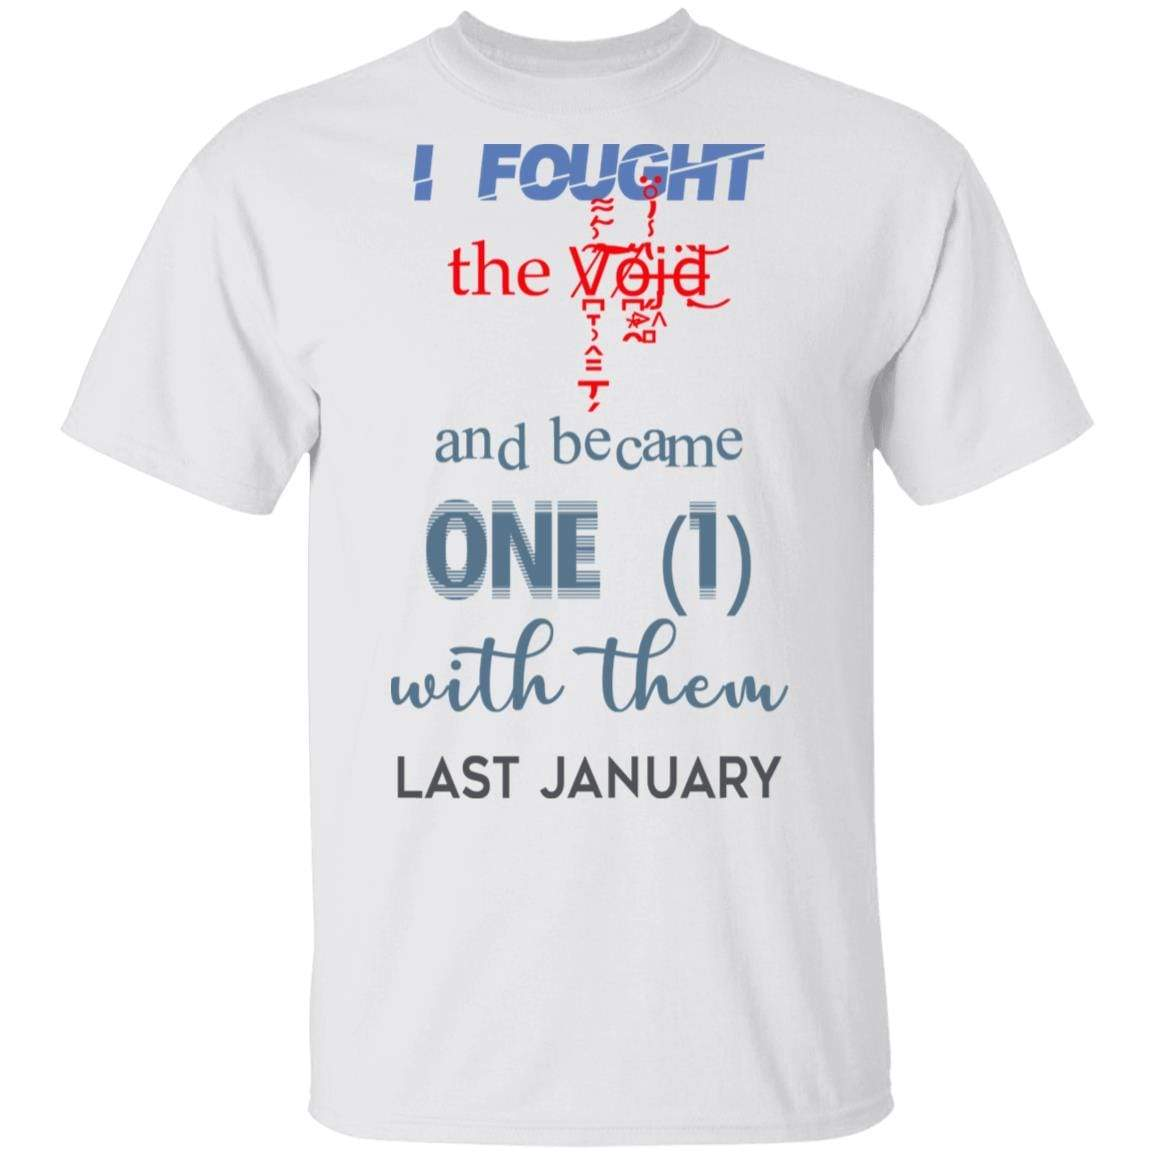 I Fought The Vojd And Became One With Them Last January T-Shirts, Hoodies 1049-9974-87130081-48300 - Tee Ript